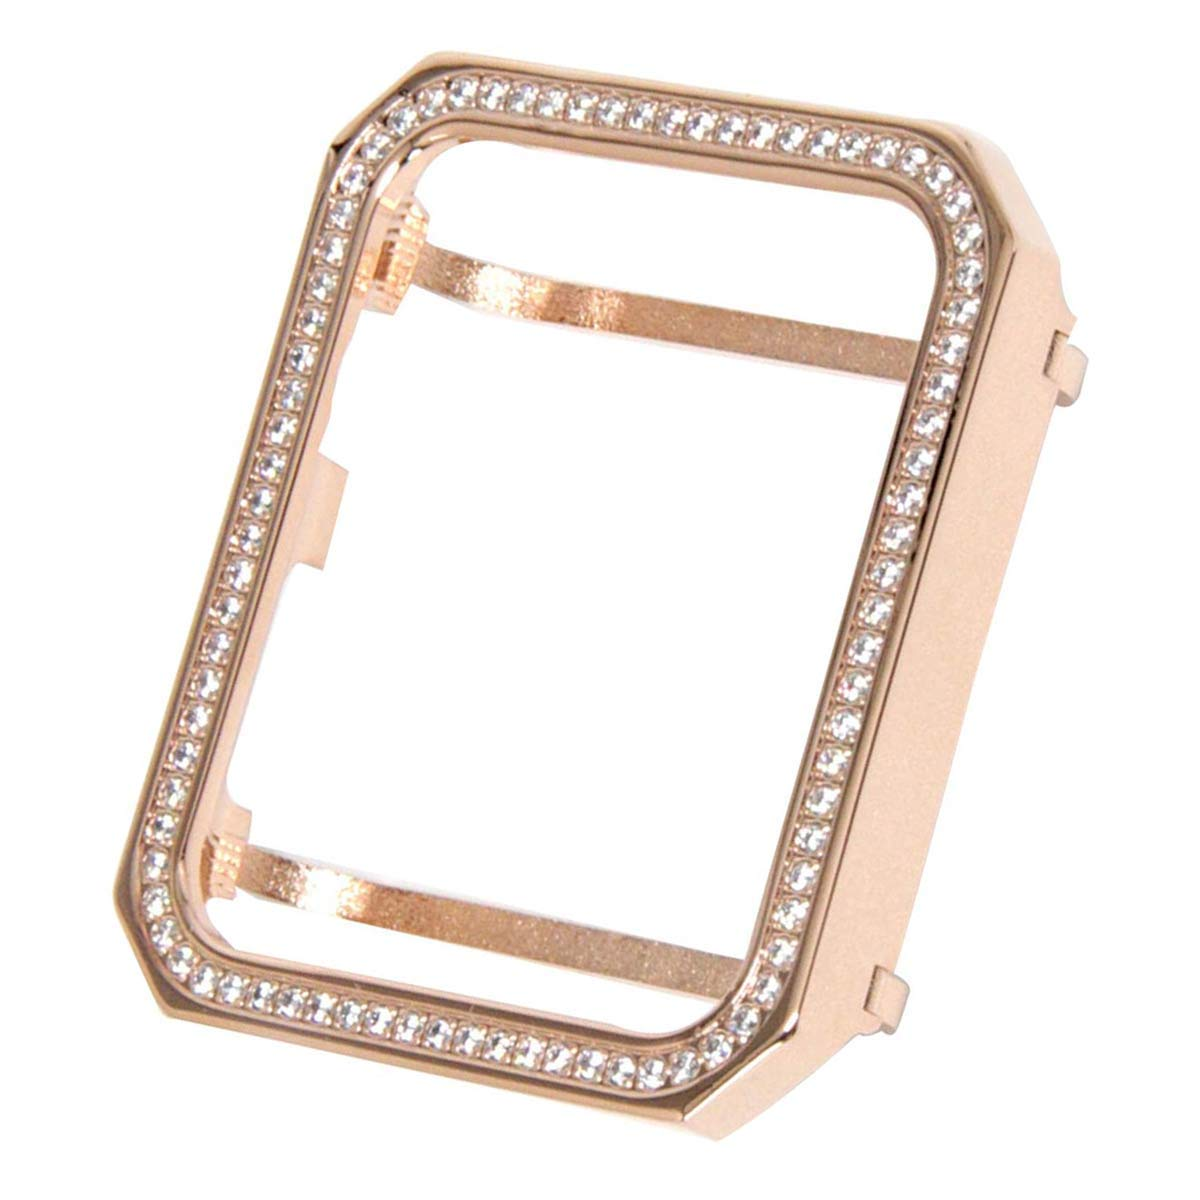 Hemobllo Smart Watch Face Case with Bling Crystal Diamonds Plate Case Cover Protective Protector Case Bumper for Apple Watch 42mm (Rose Gold) by Hemobllo